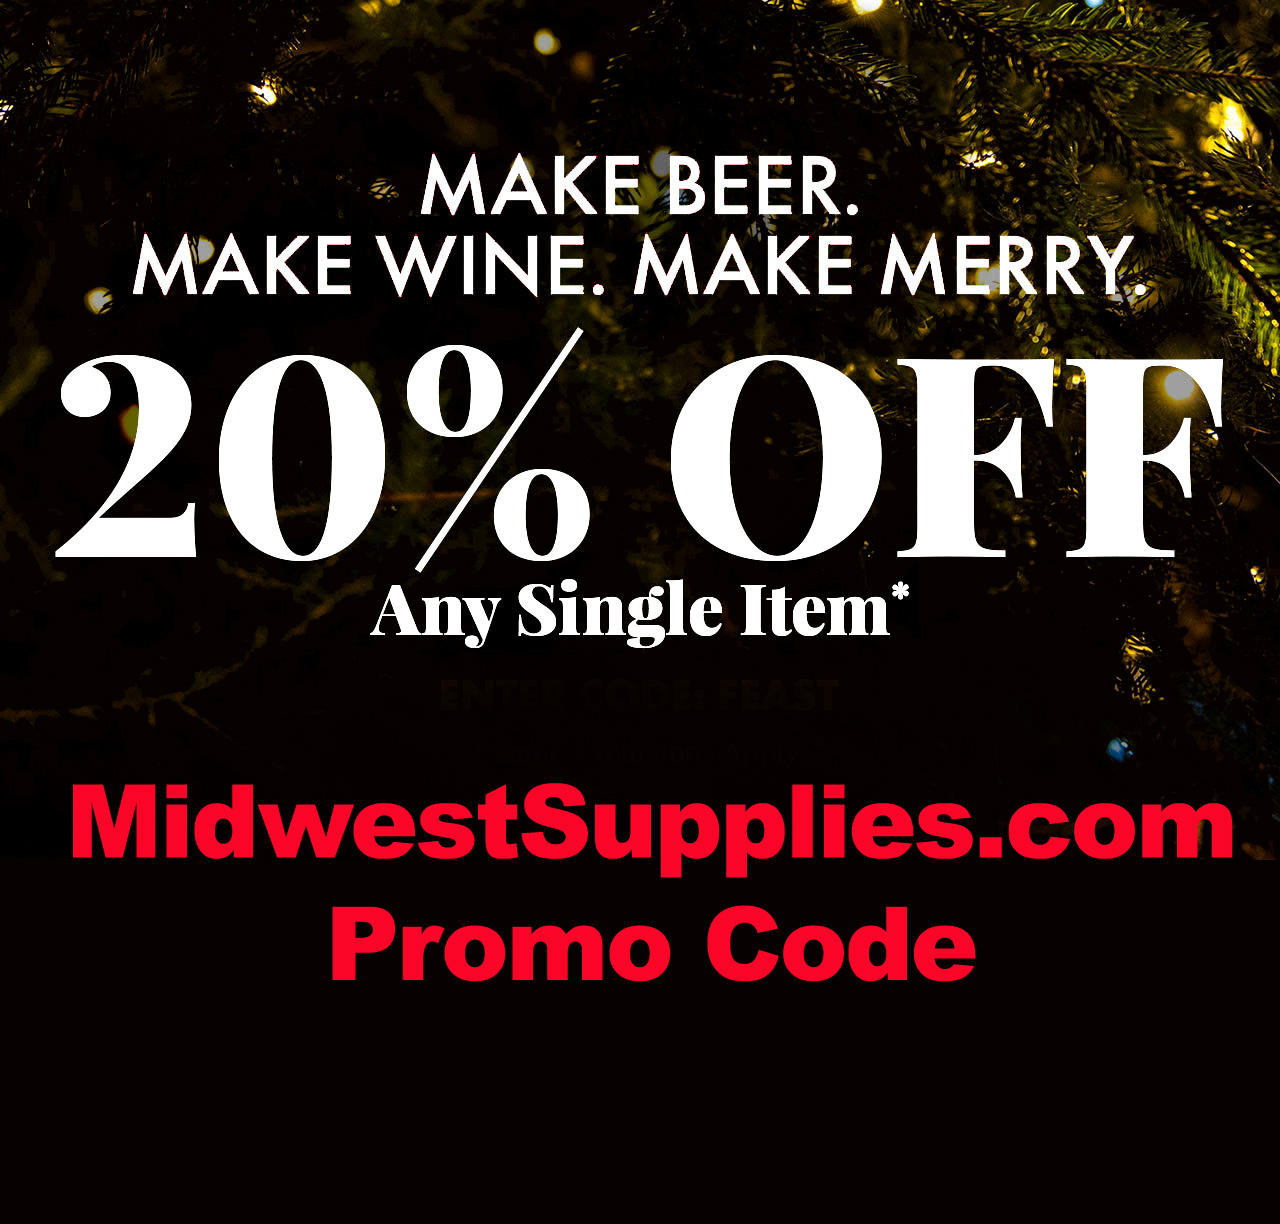 Midwest Supplies Save 20% On A Single Item at Midwest Supplies With this MidwestSupplies.com Promo Code Coupon Code